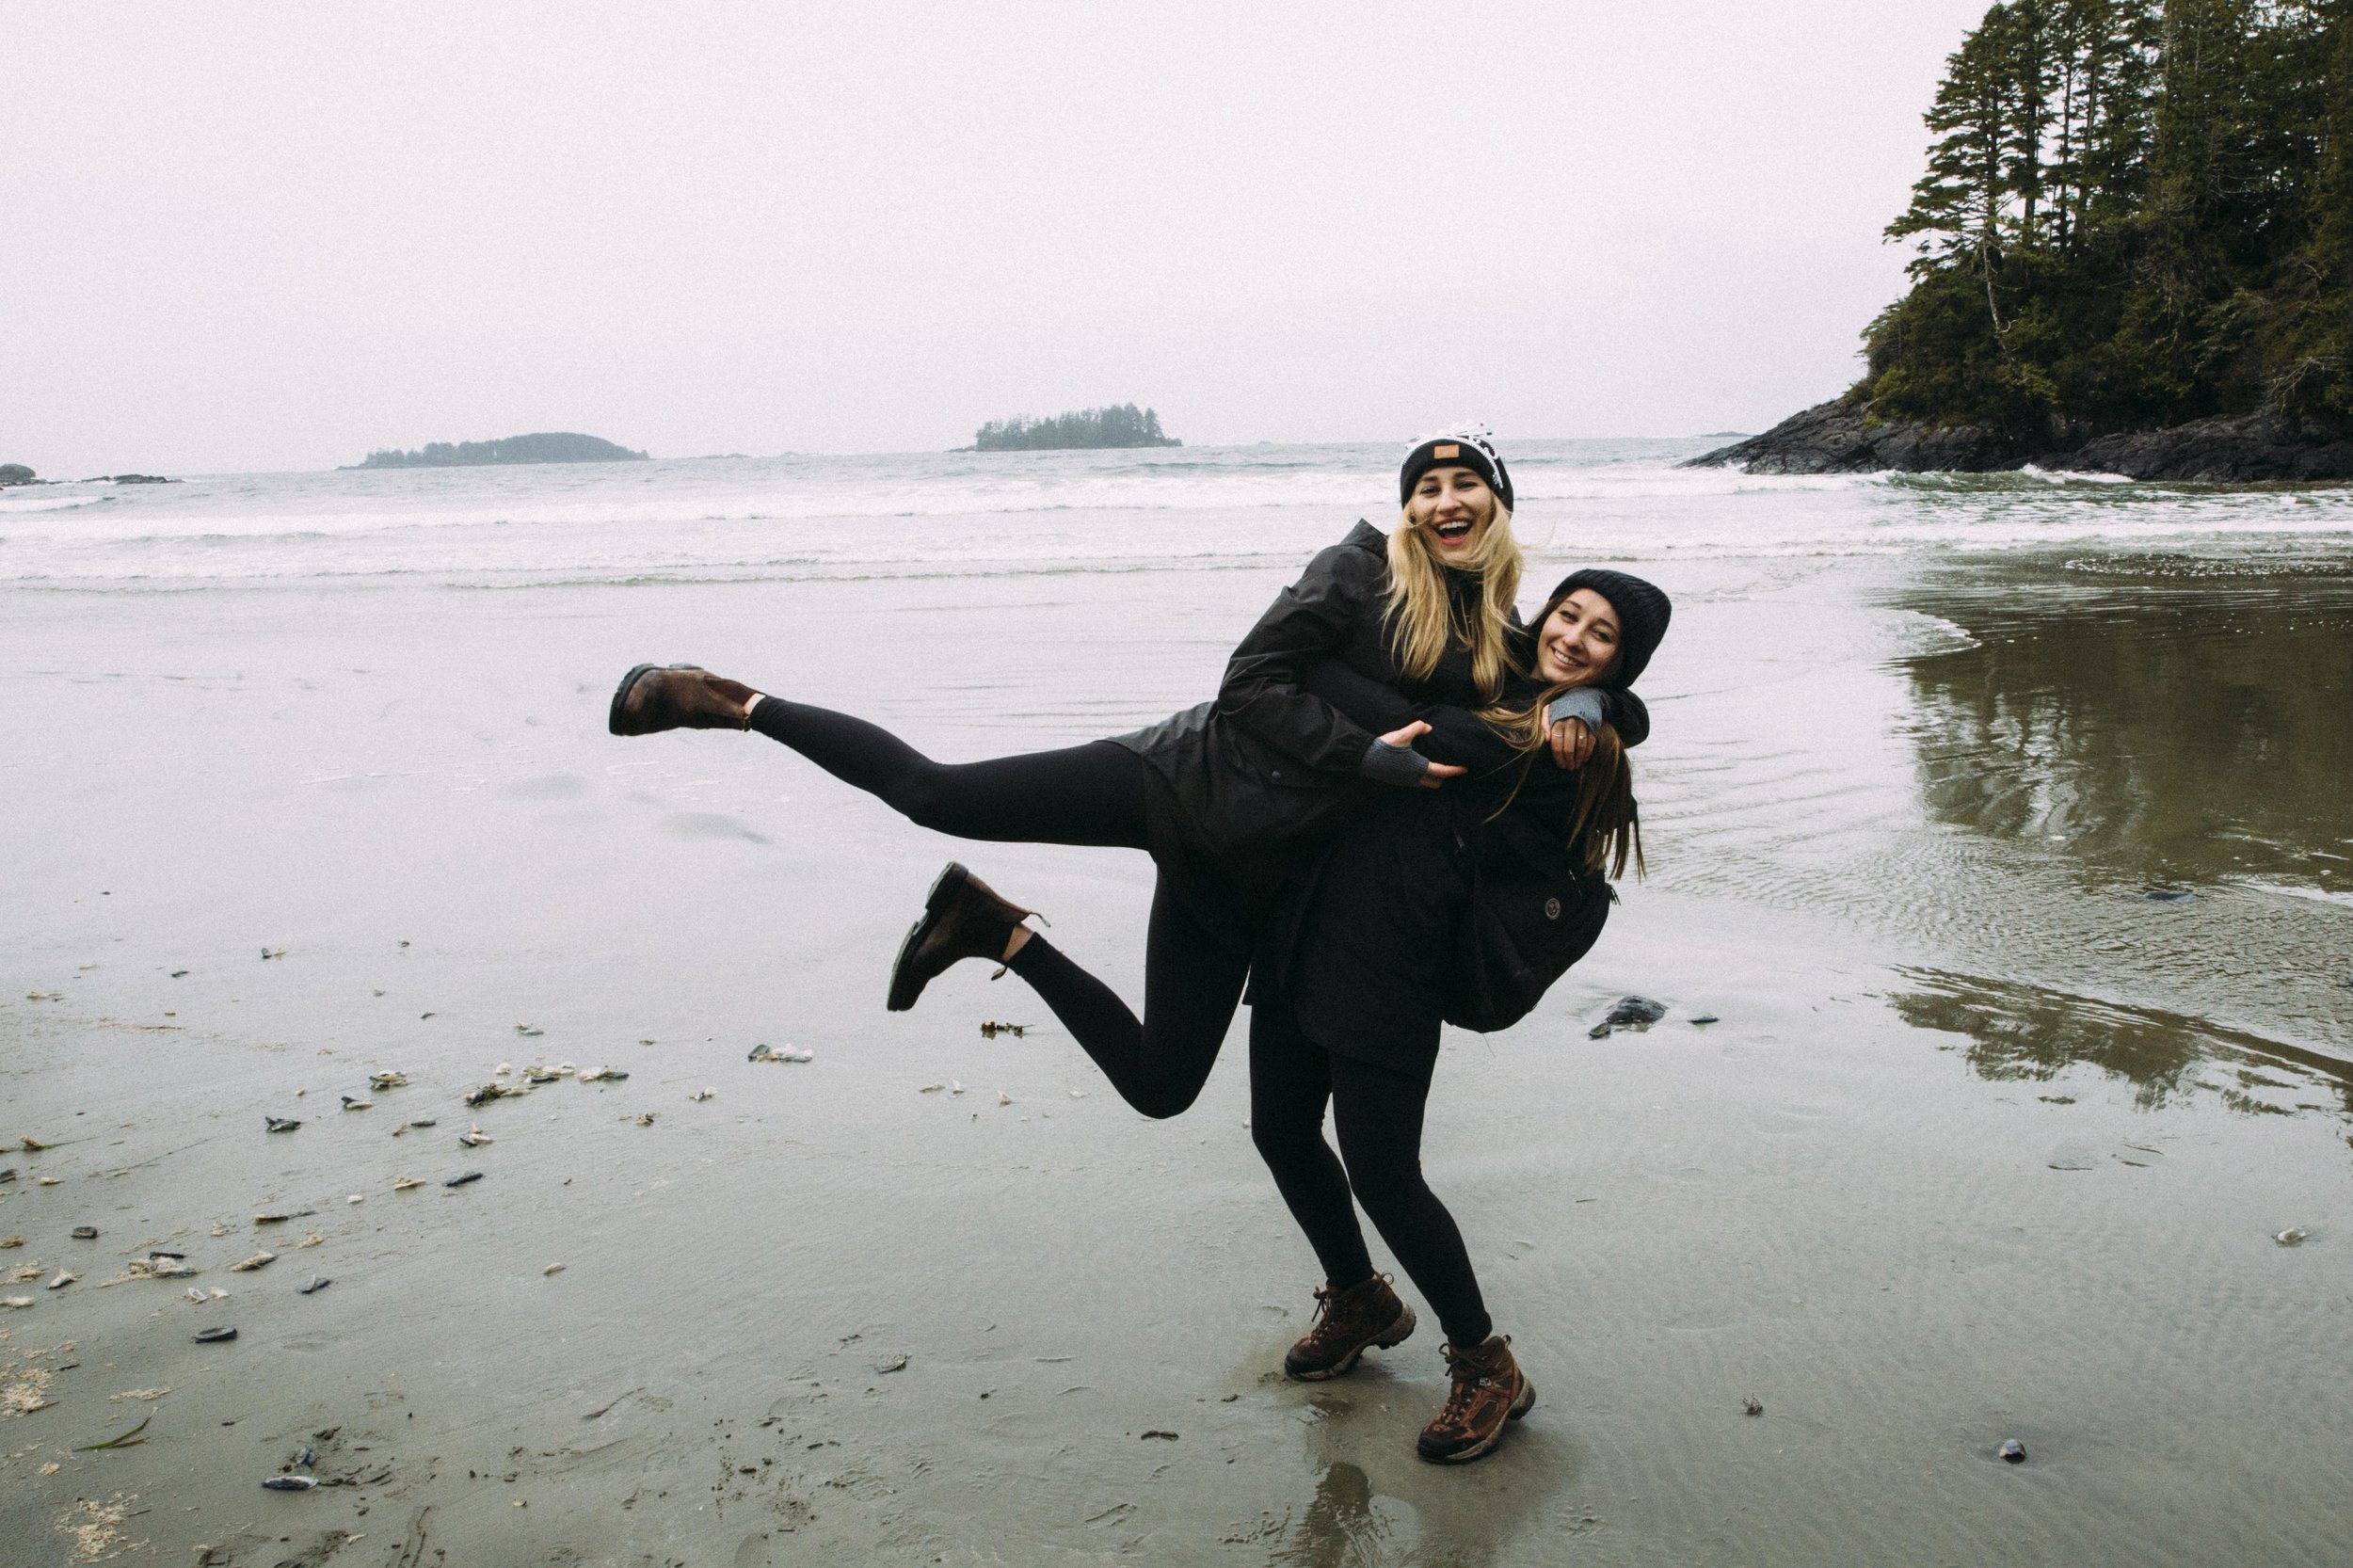 City: Tofino  Location: Tonquin park  Province: British Columbia  Country: Canada,